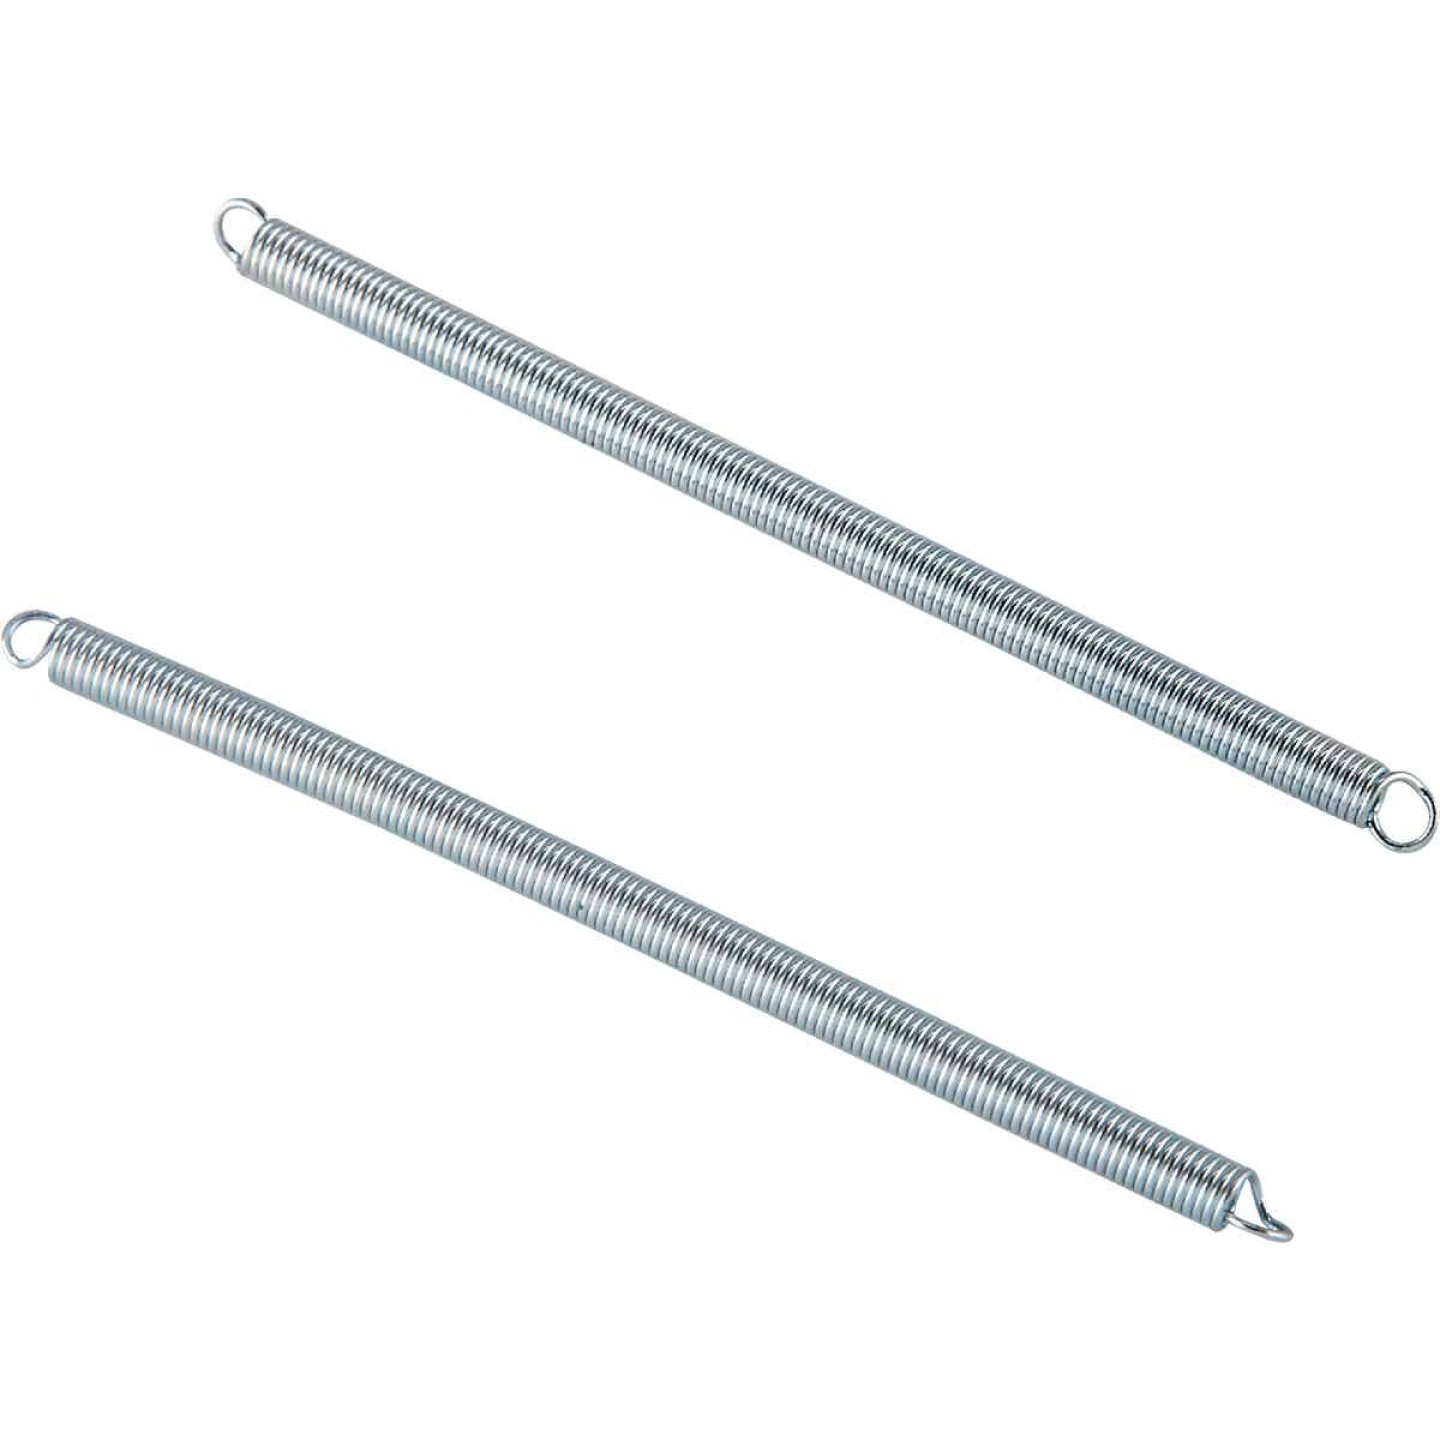 Century Spring 6 In. x 9/16 In. Extension Spring (2 Count) Image 1